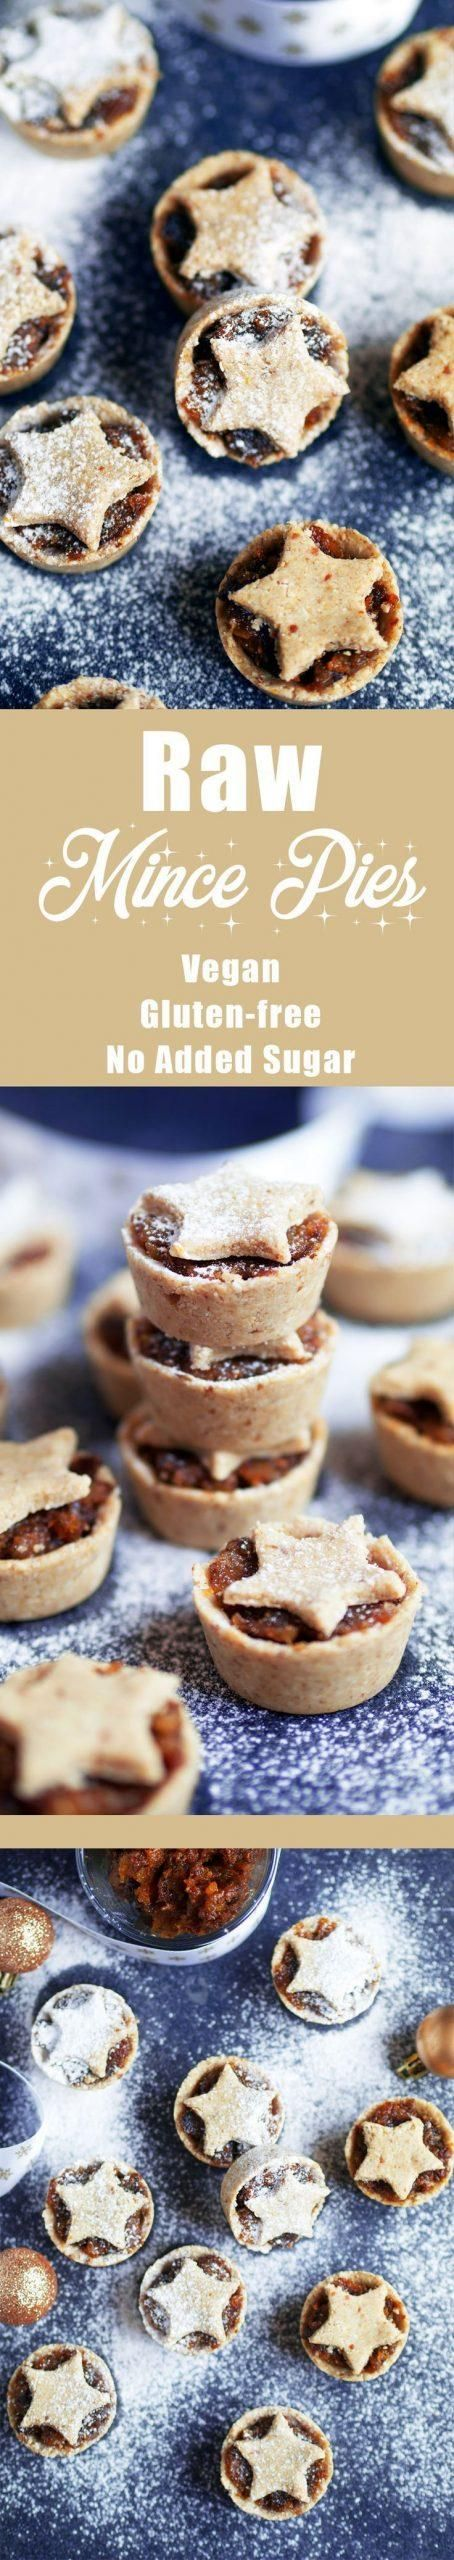 Raw Mince Pies - Vegan & Glutenfrei   - Fav Recipes! Egg-free, dairy-free, meat-free, vegan + veget